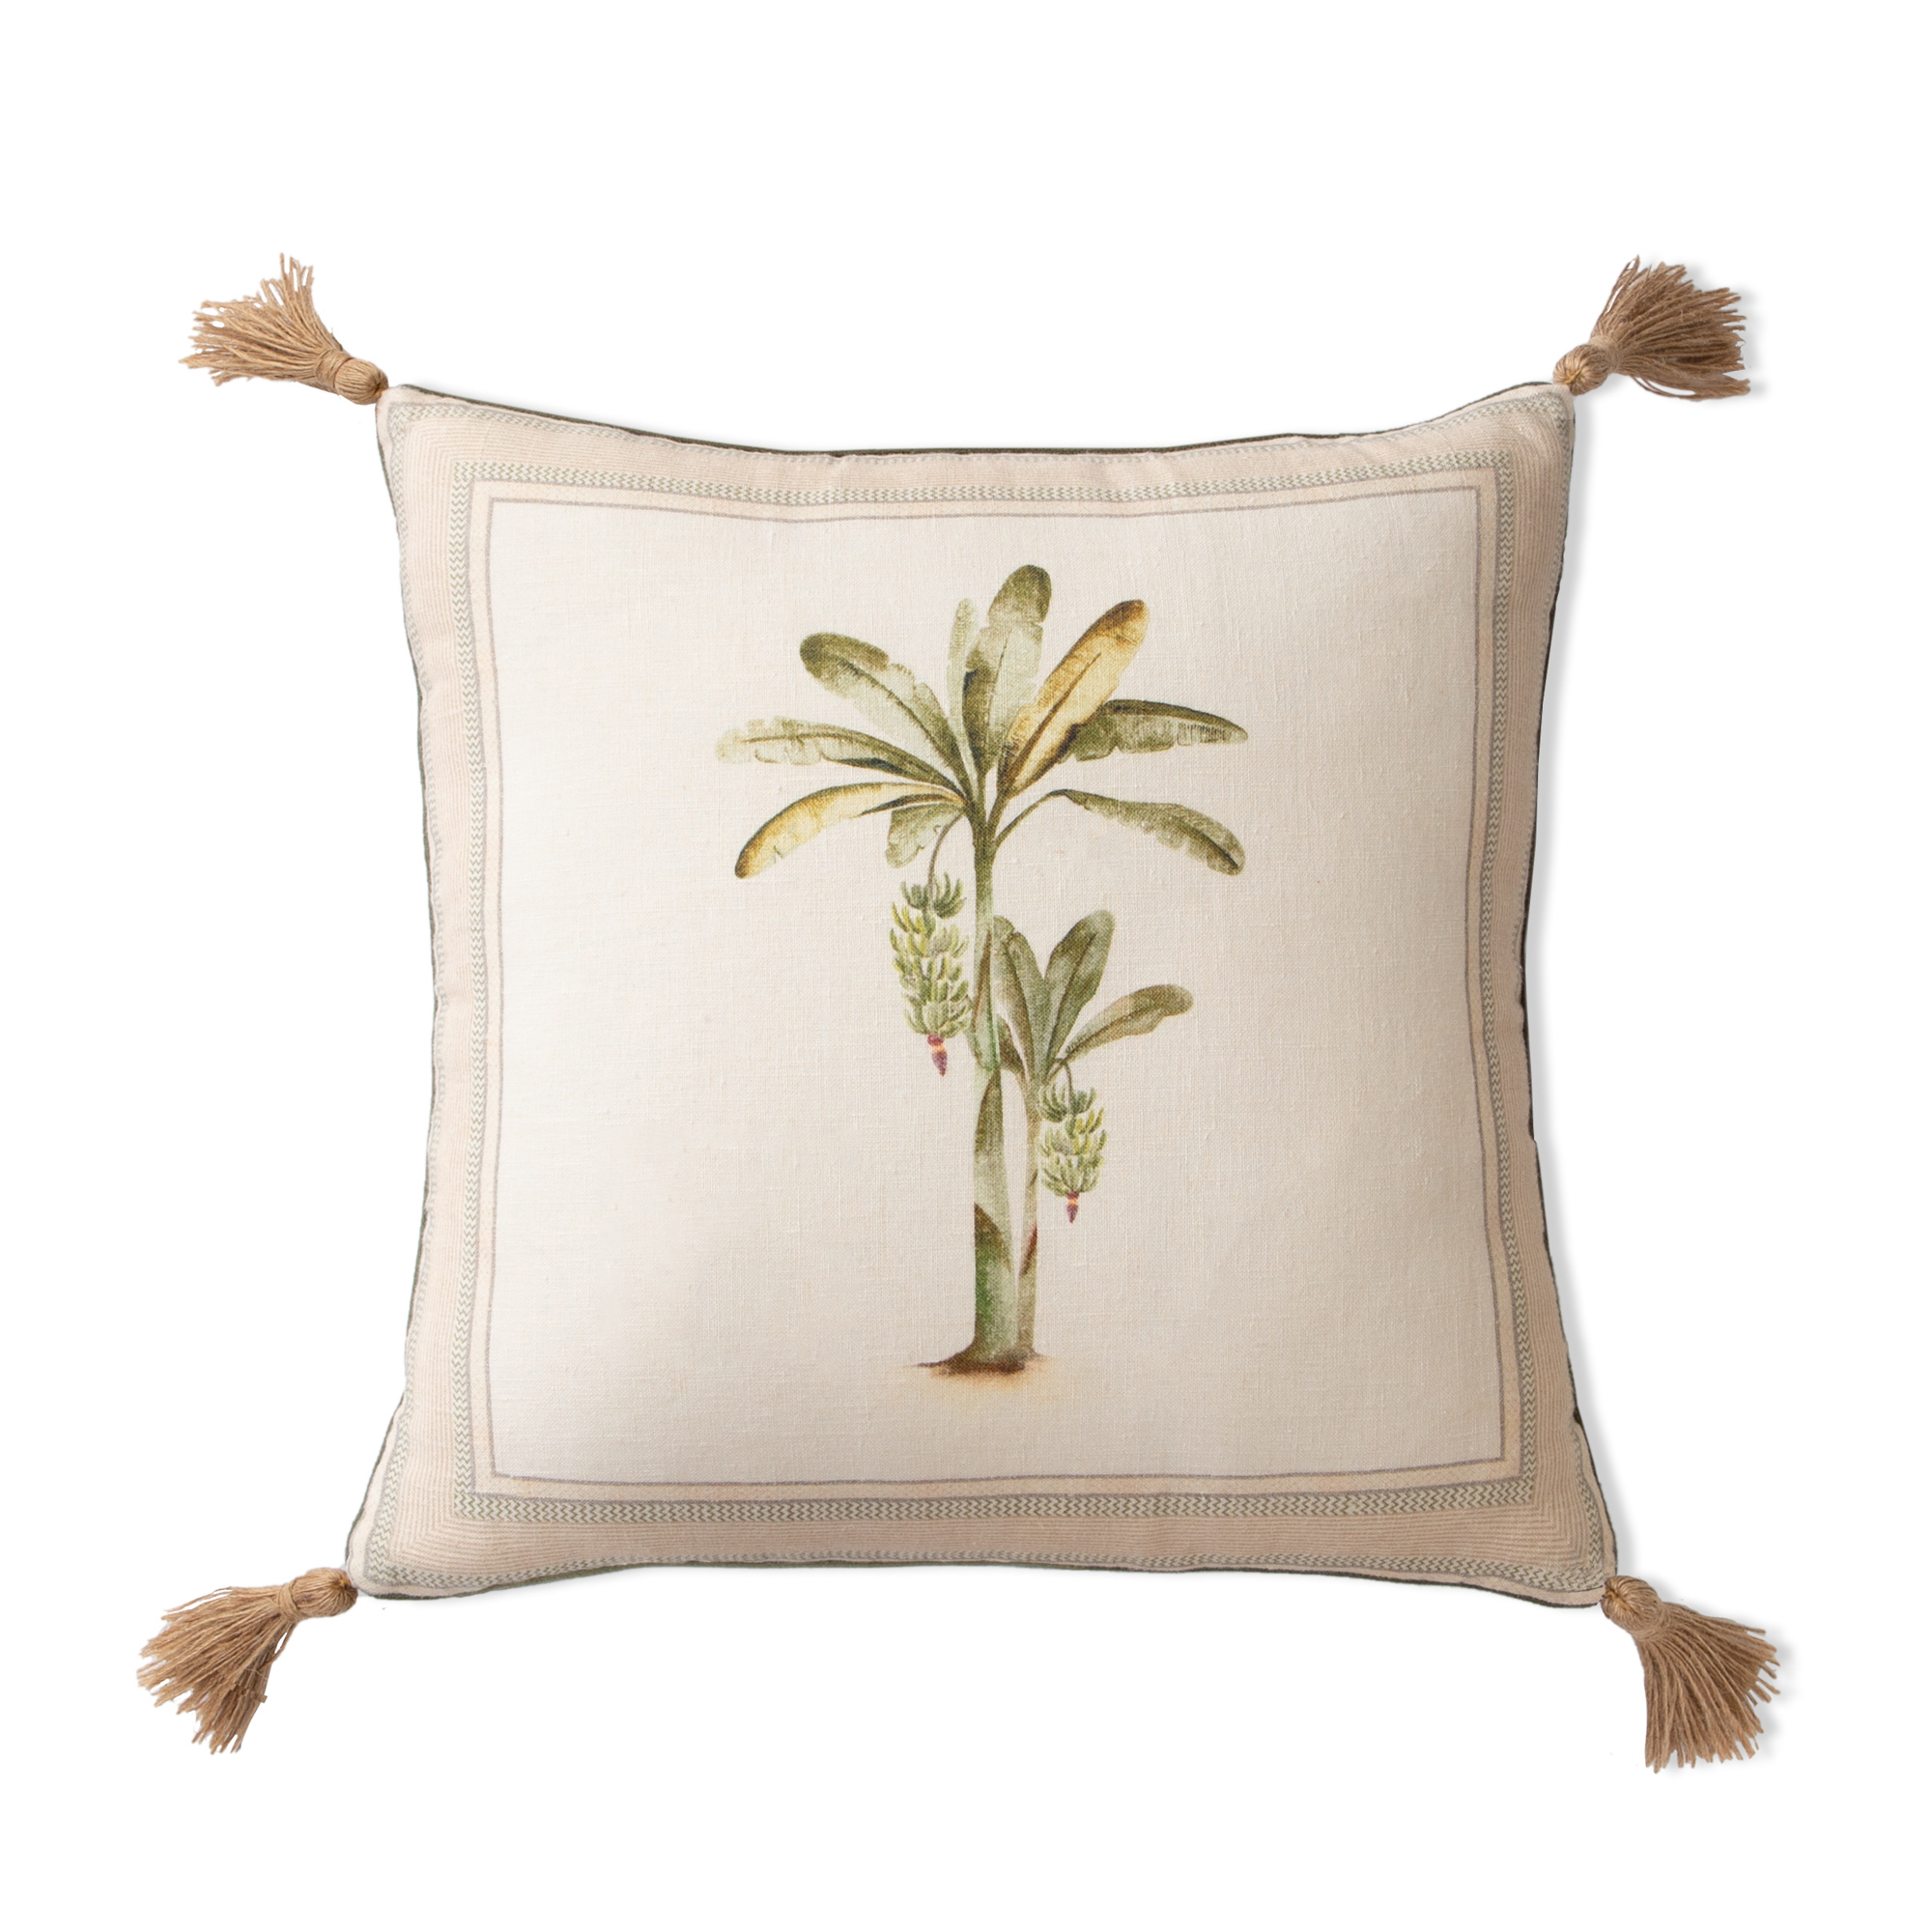 Banana Tree Cushion Cover